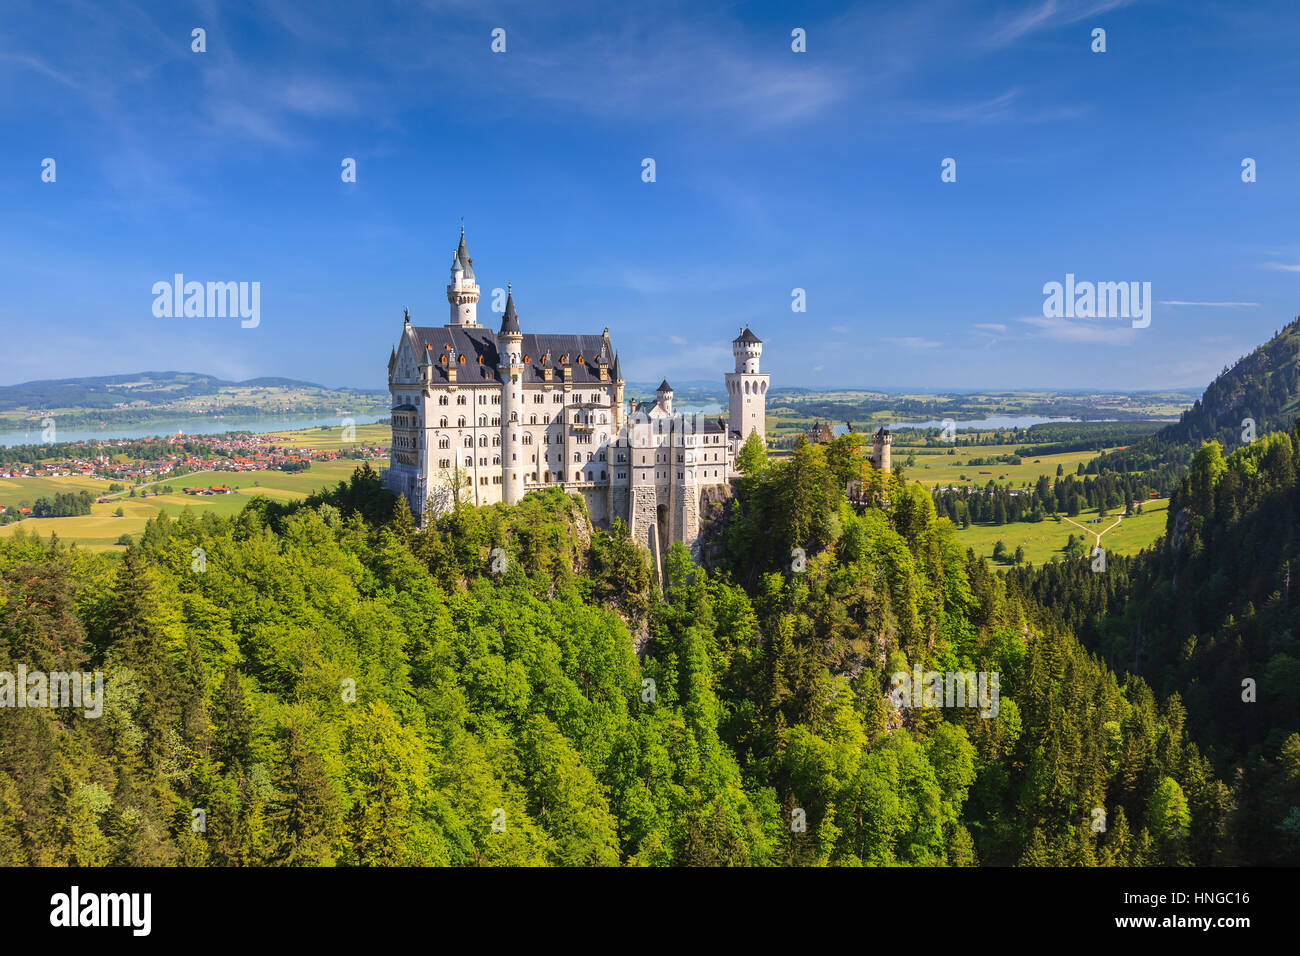 Estate vista del Castello di Neuschwanstein Fussen, Baviera, Germania Immagini Stock